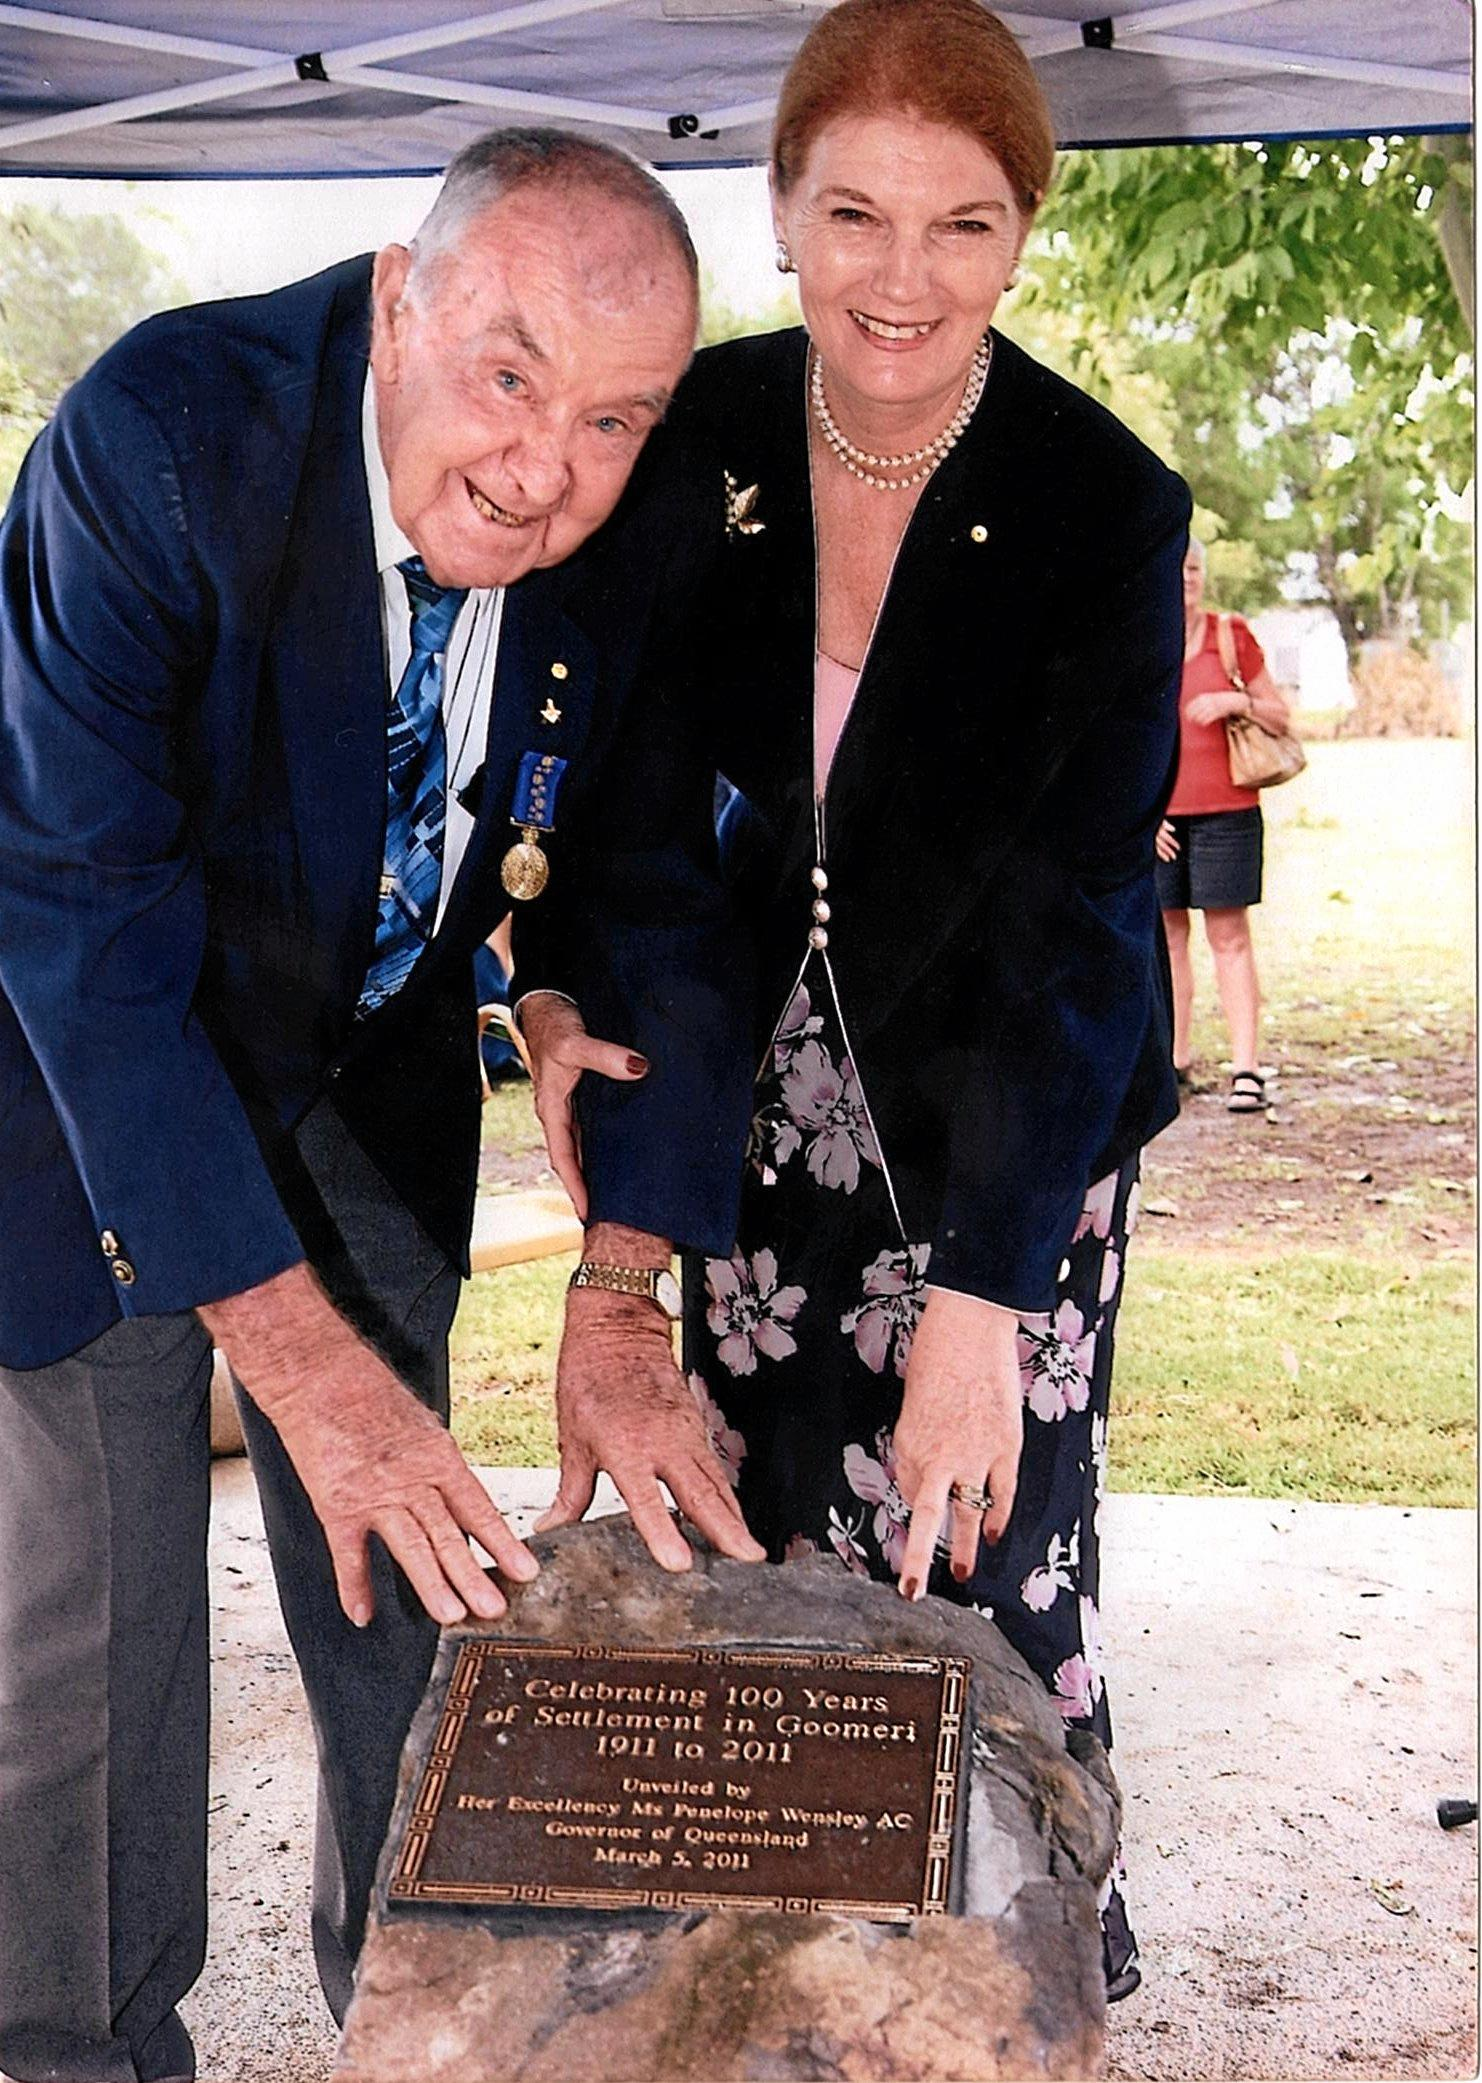 Alec McIntosh with former Governor of Queensland Penelope Wensley.